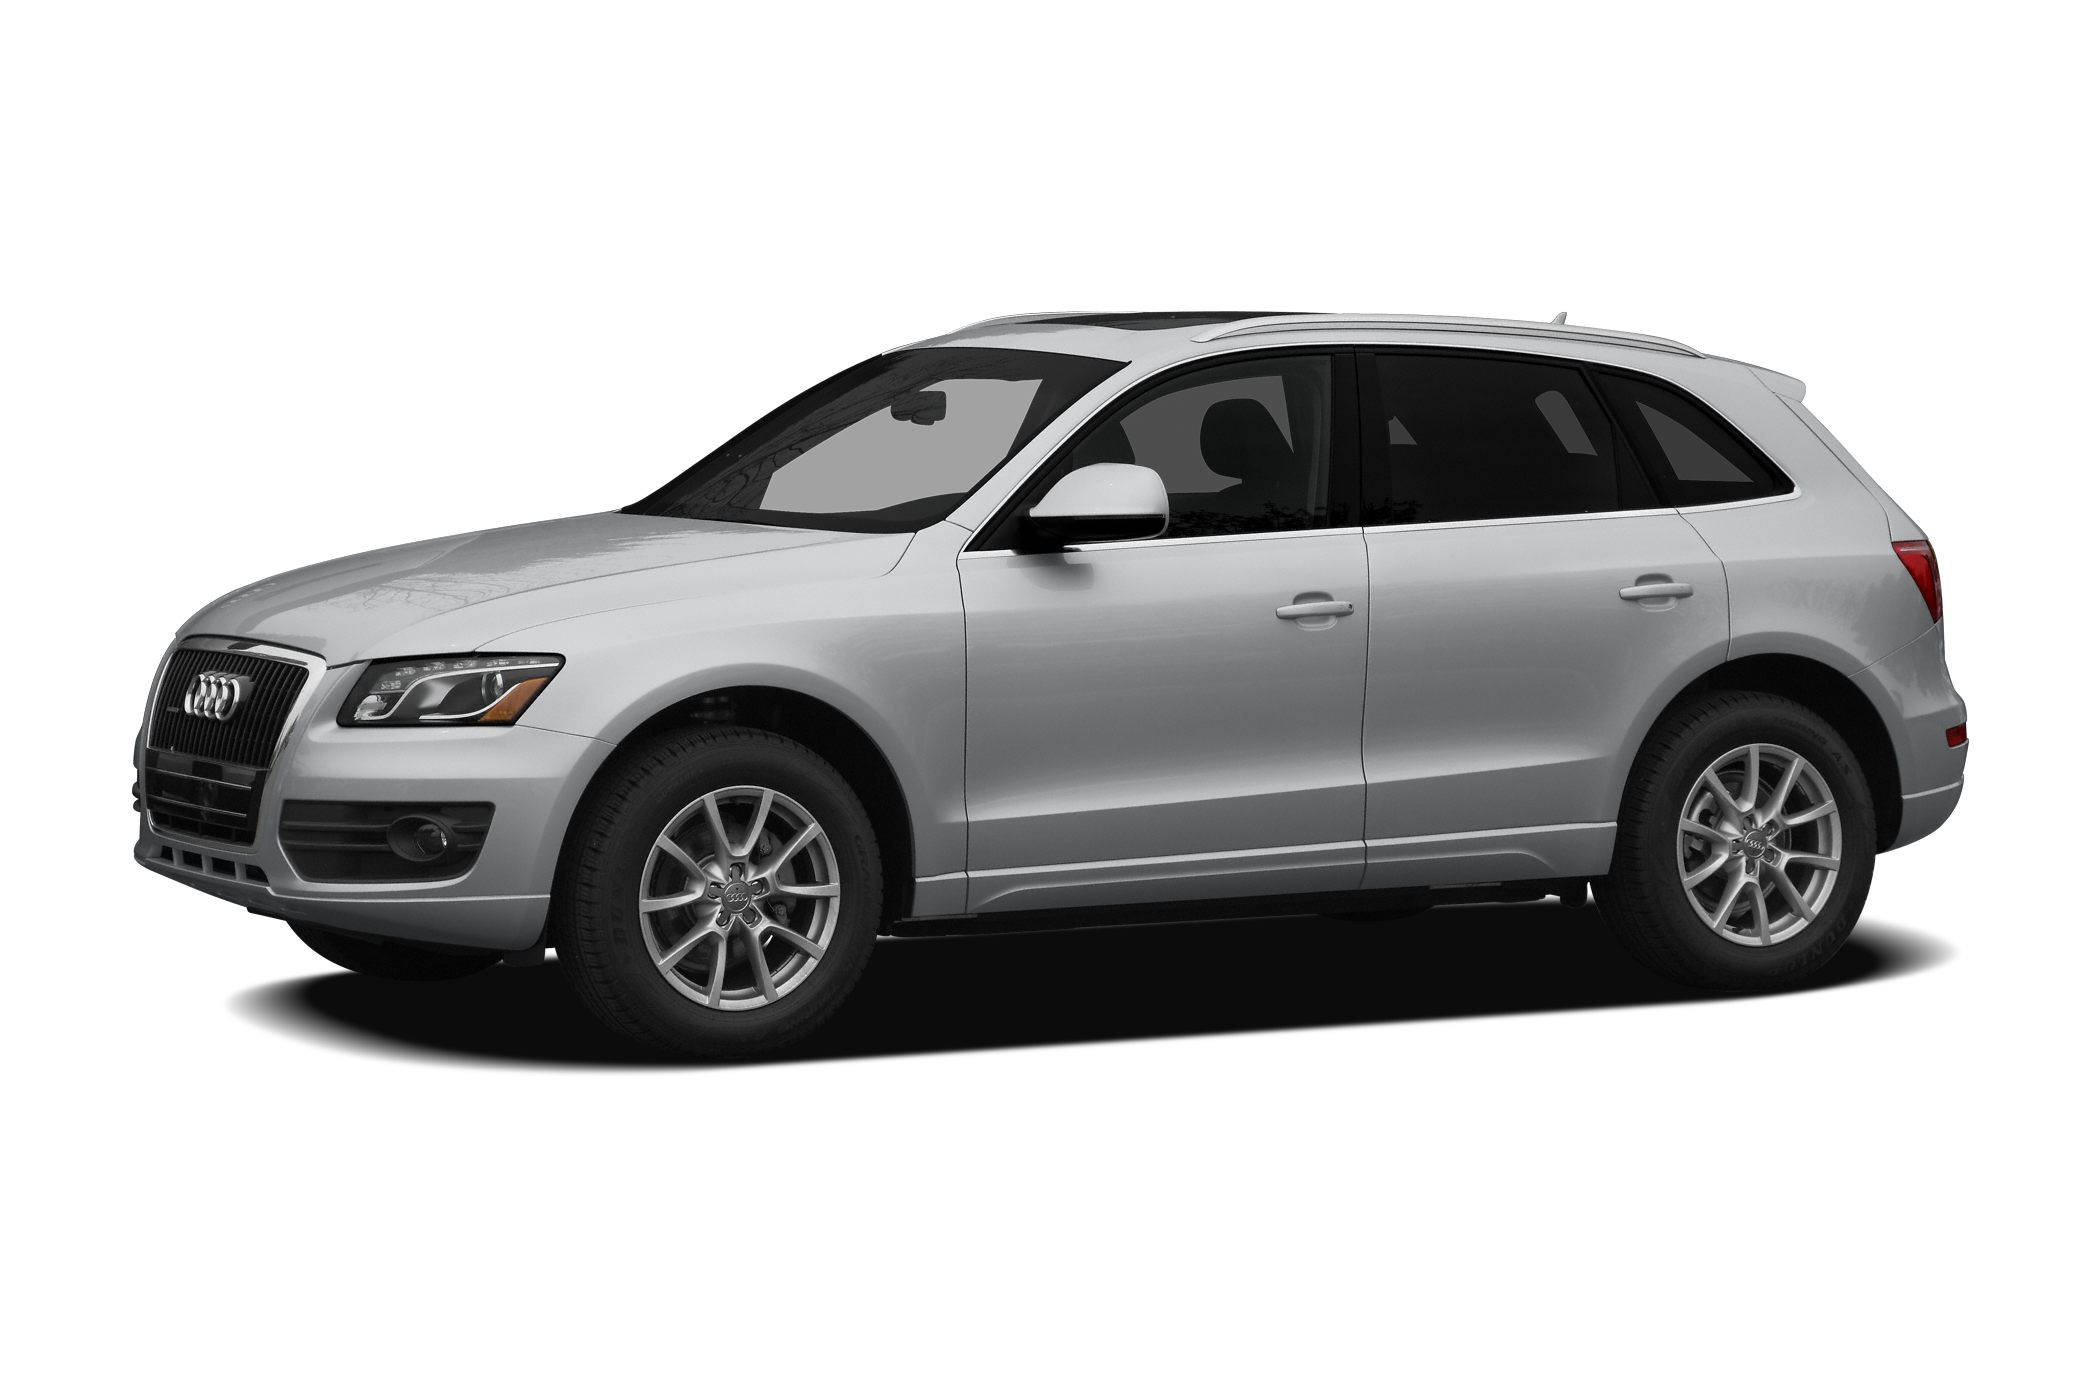 2009 Audi Q5 32 quattro Premium PANORAMIC ROOF BLUETOOTH UPGRADED SPORT WHEELS LOW MILES DEAL